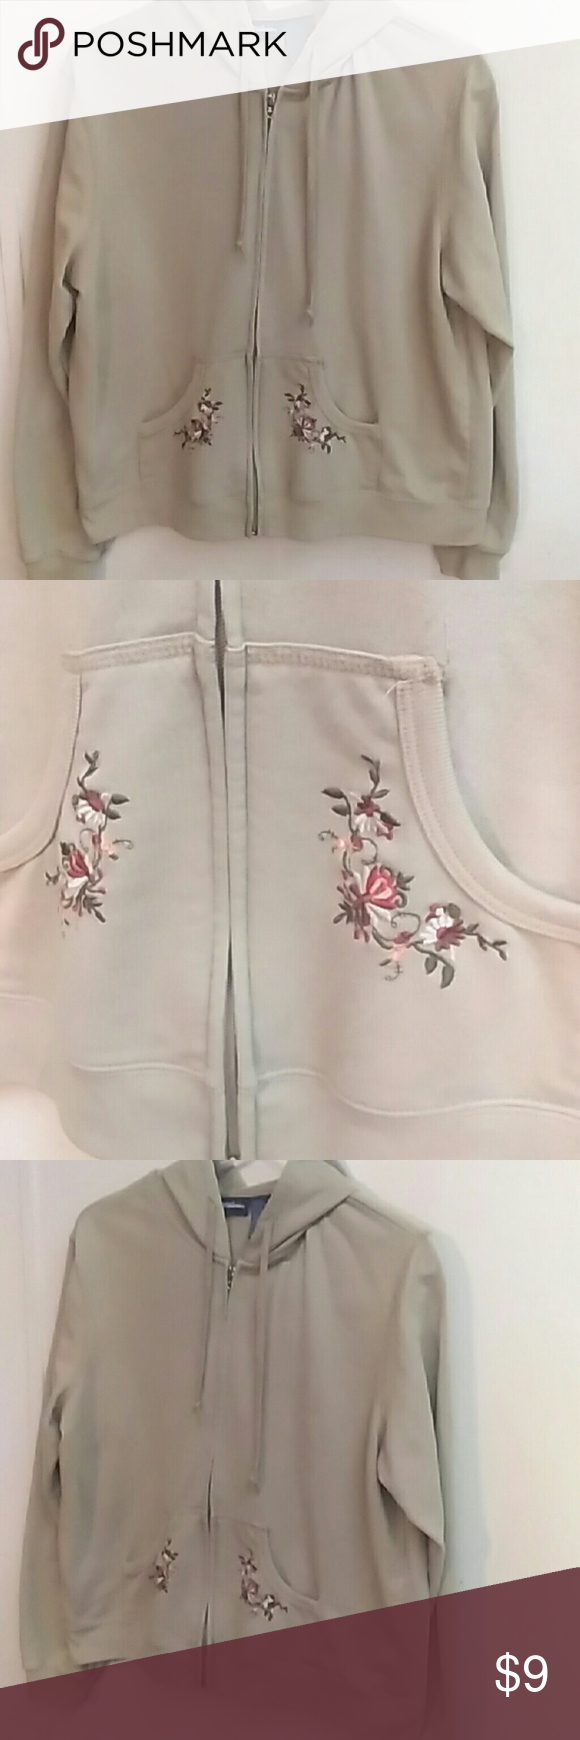 Catalina Size 12 14 Hoodie Jacket Catalina Tag Reads 12 14 Zip Front With Hood Sand Color With Floral Embroidery Ca Clothes Design Hoodie Jacket Hoodies [ 1740 x 580 Pixel ]